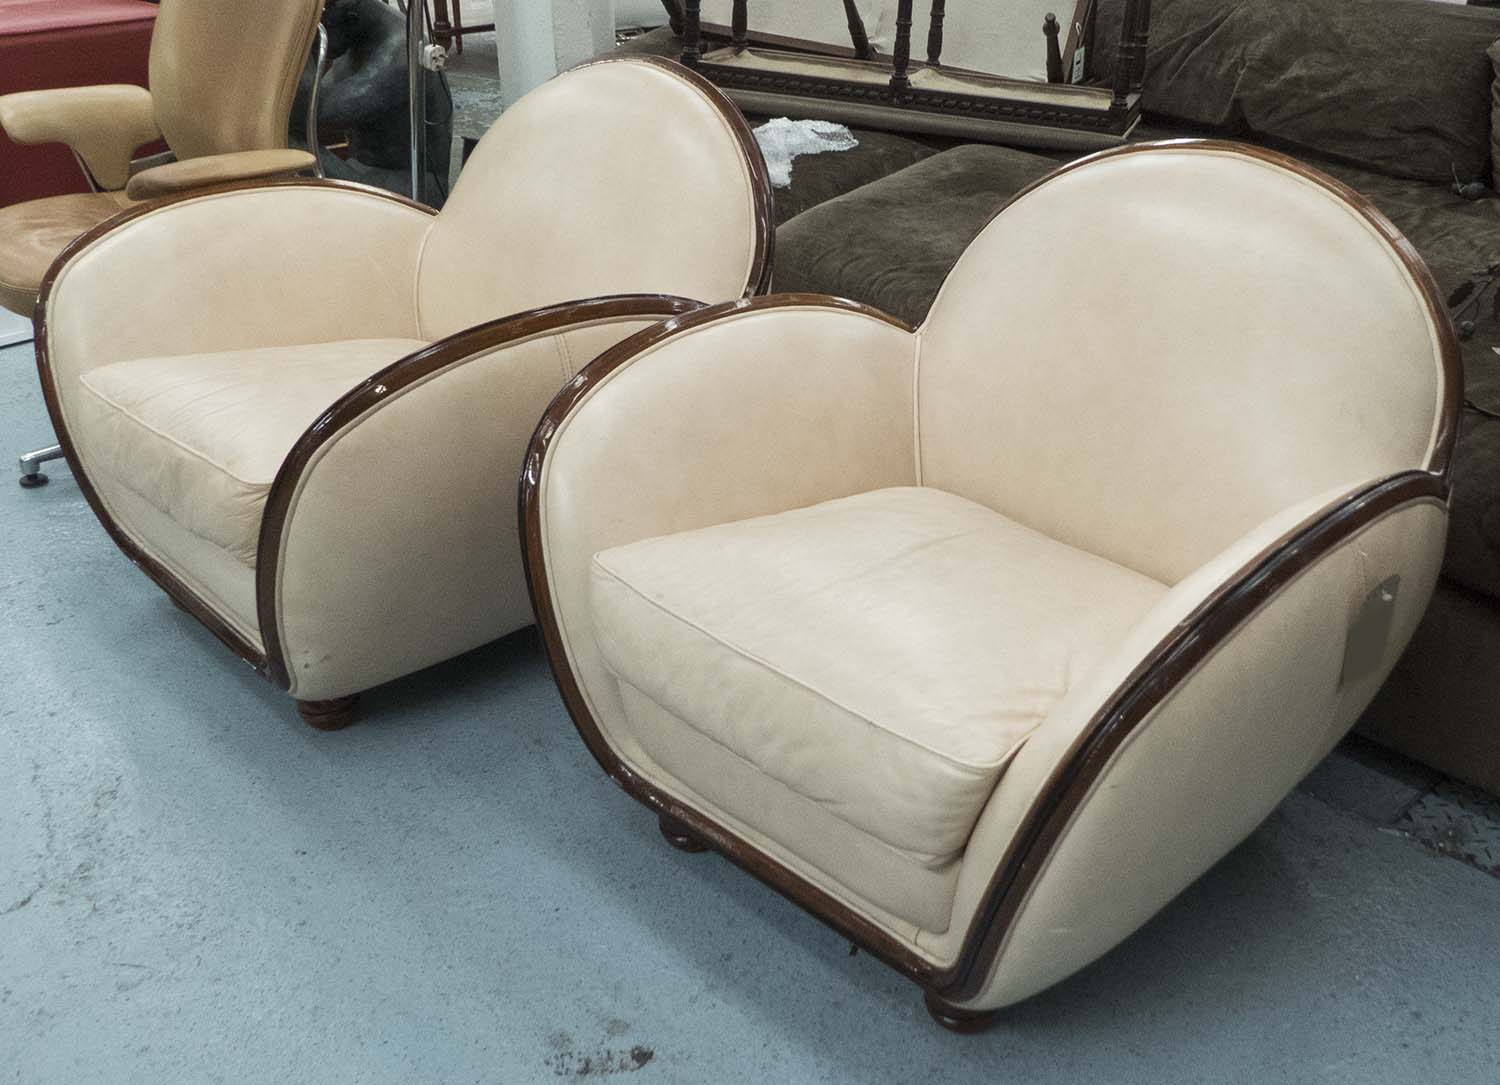 Armchairs A Pair Art Deco Style In Cream Leather Edged In Wood  # Muebles Fomento